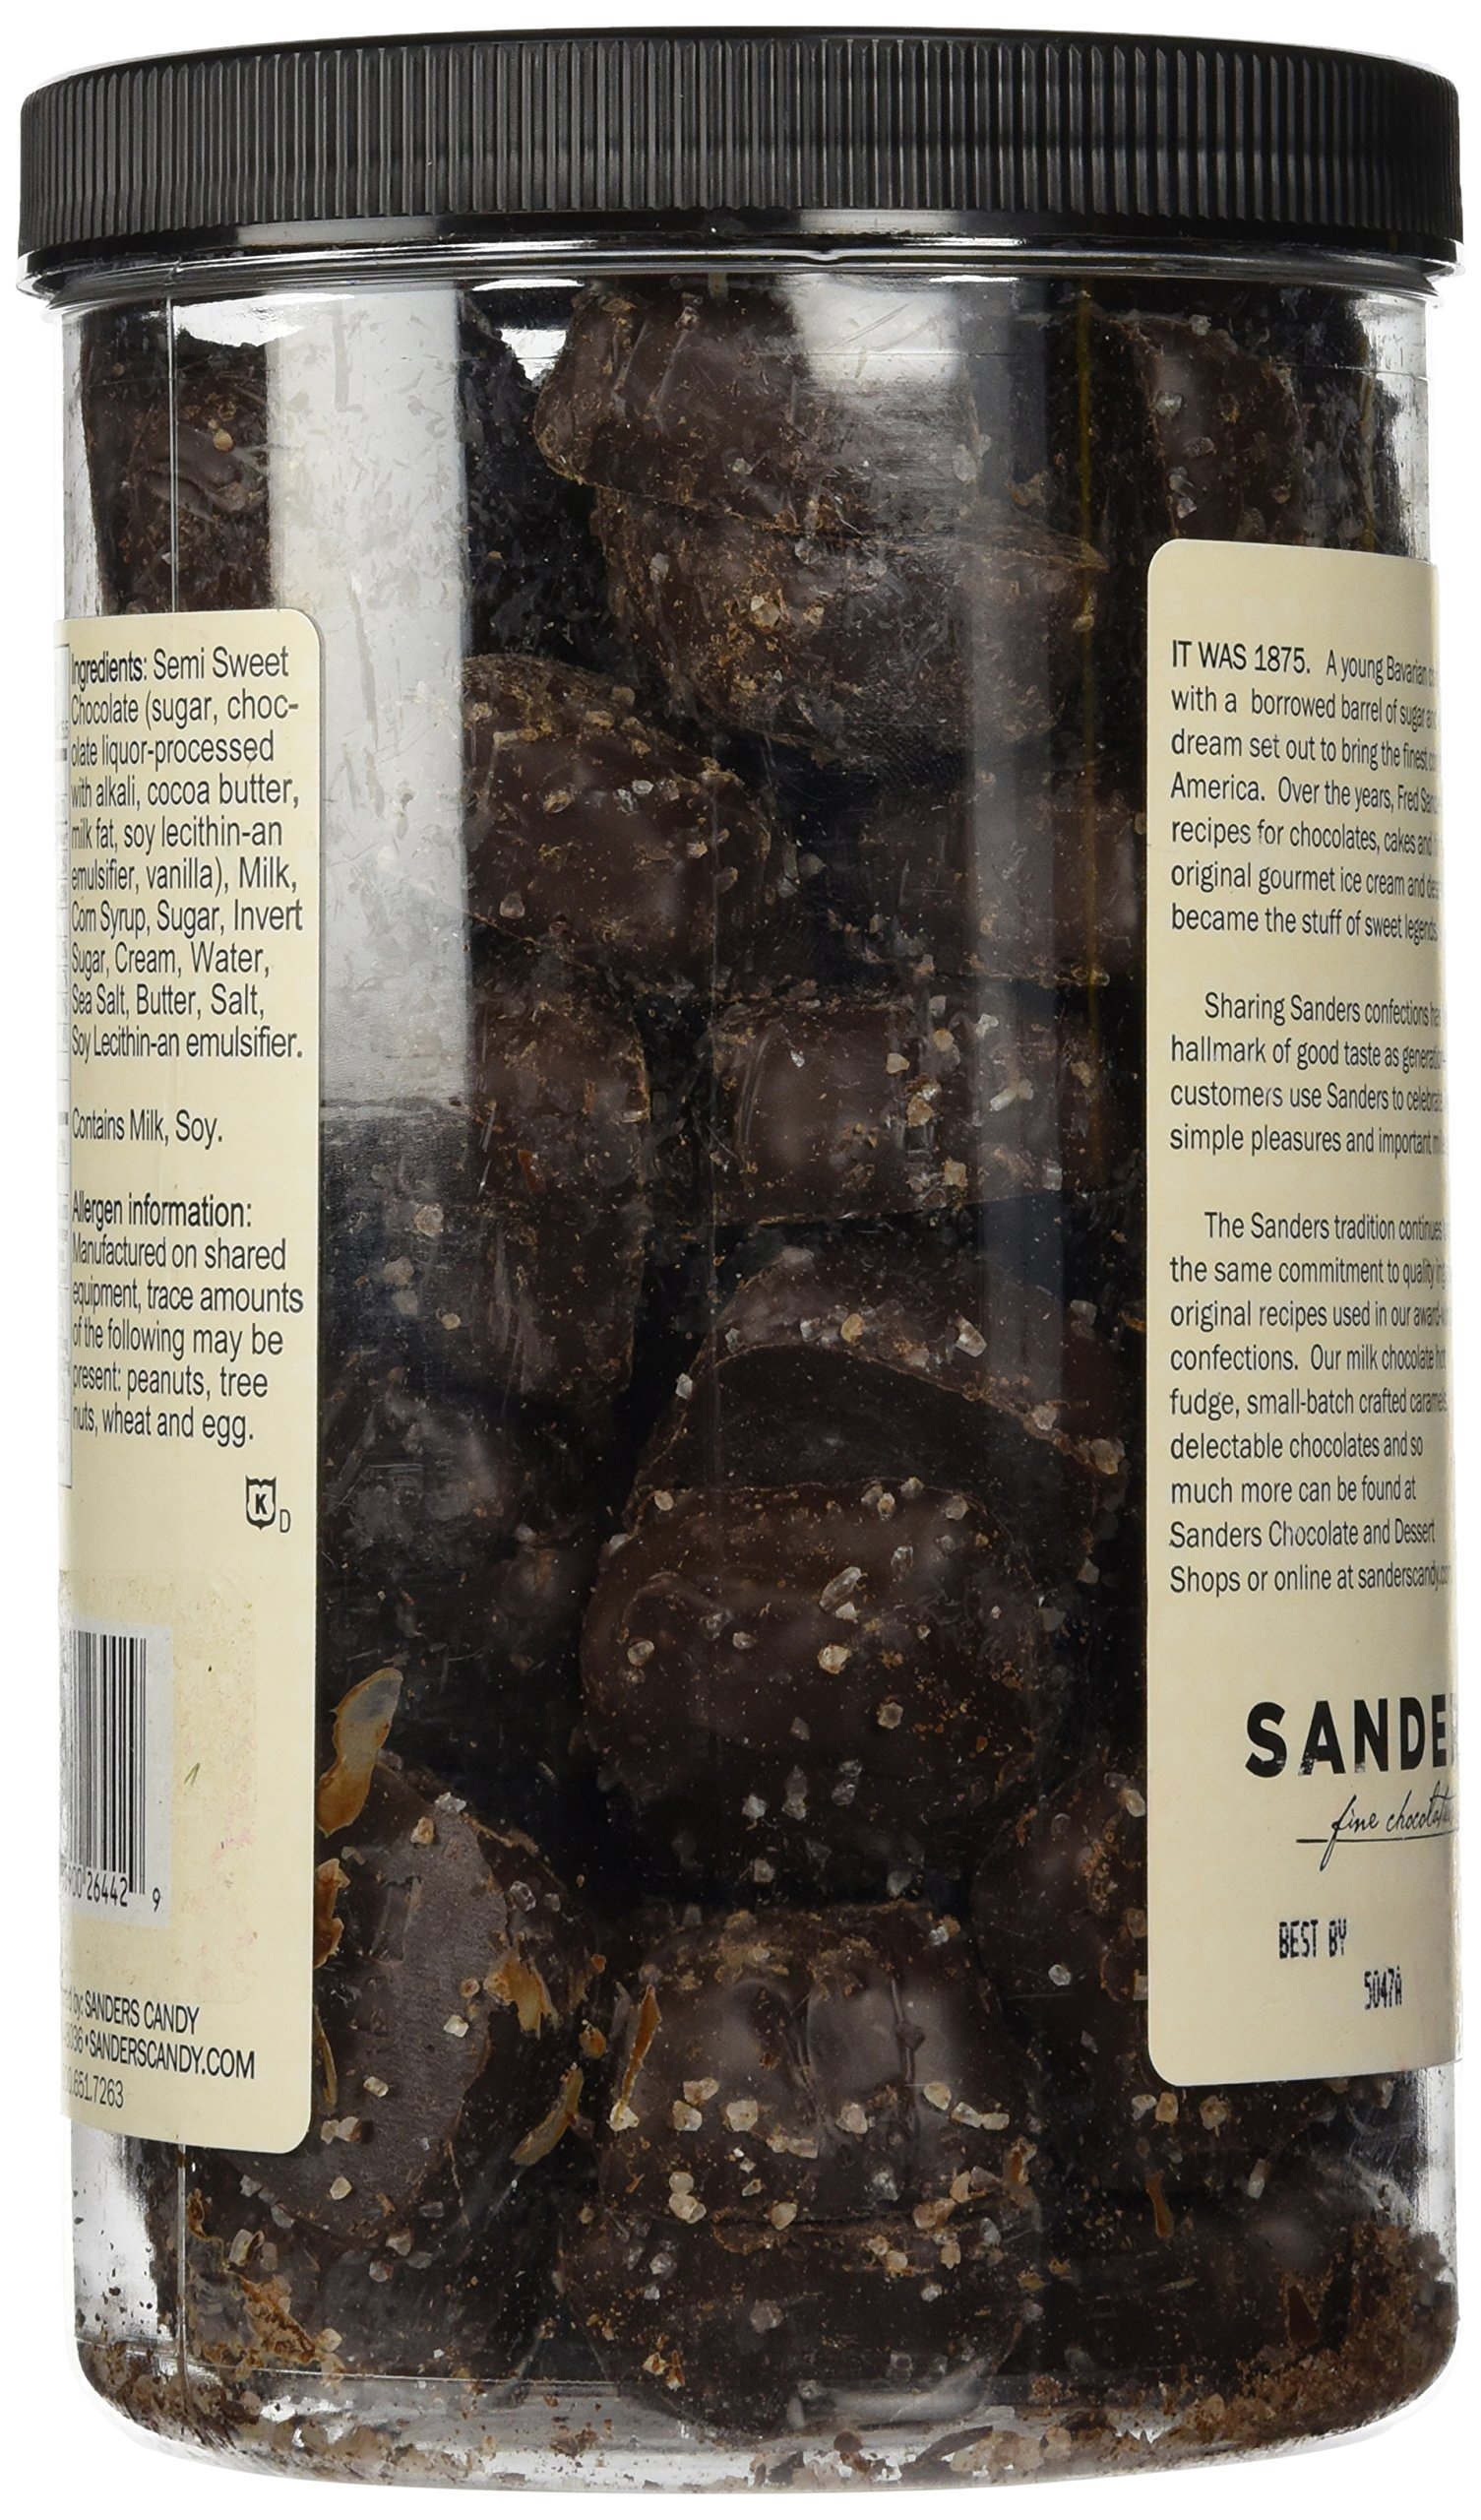 Sanders Dark Chocolate Sea Salt Caramels - 36 ounces (2.25 pounds) by Sanders® (Image #5)